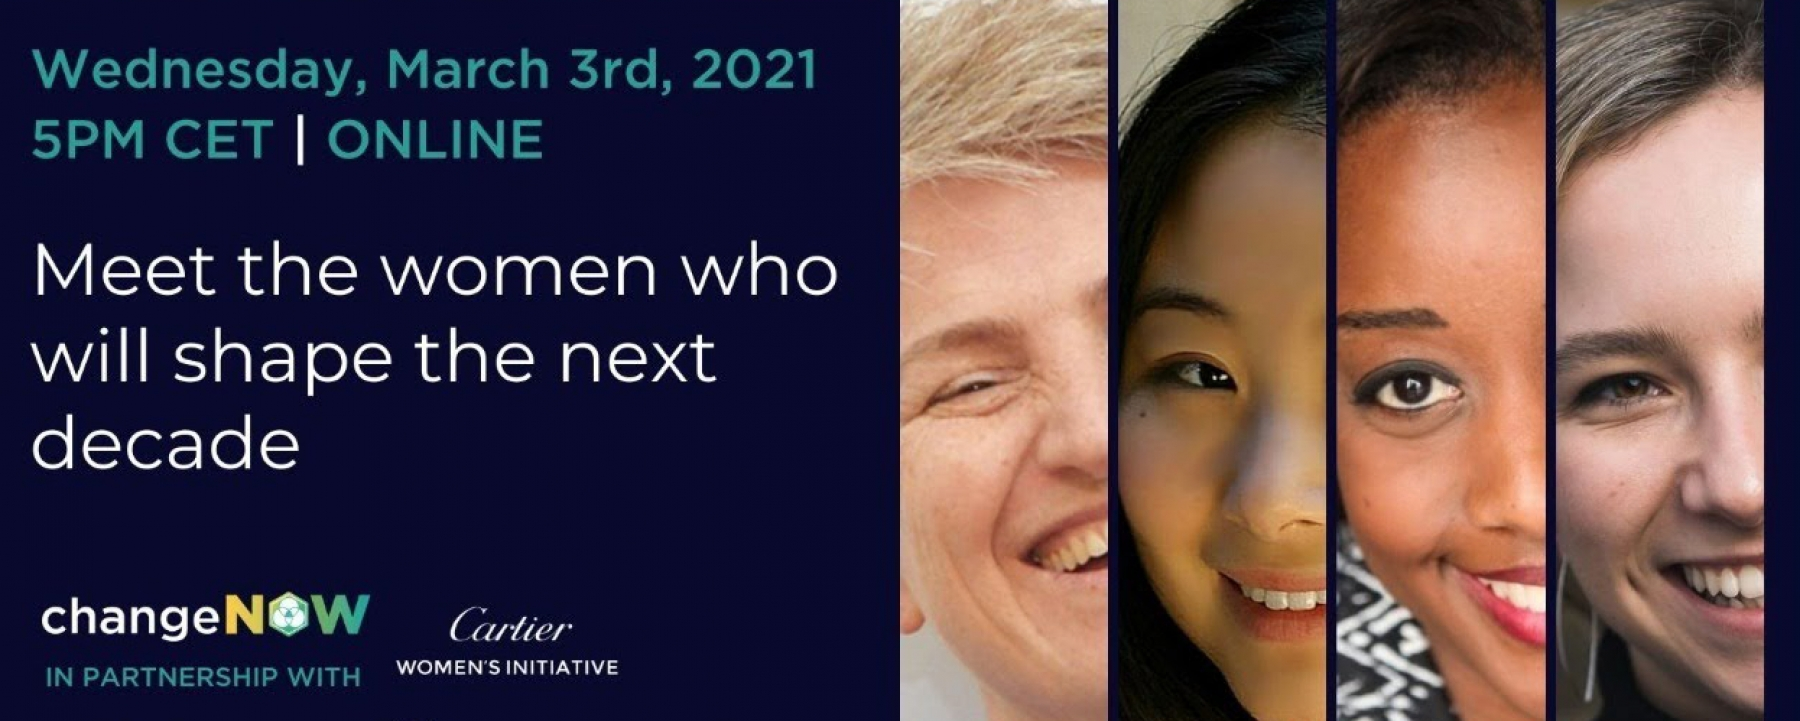 Meet the women who will shape the next decade, organisé par ChangeNOW le 3 mars